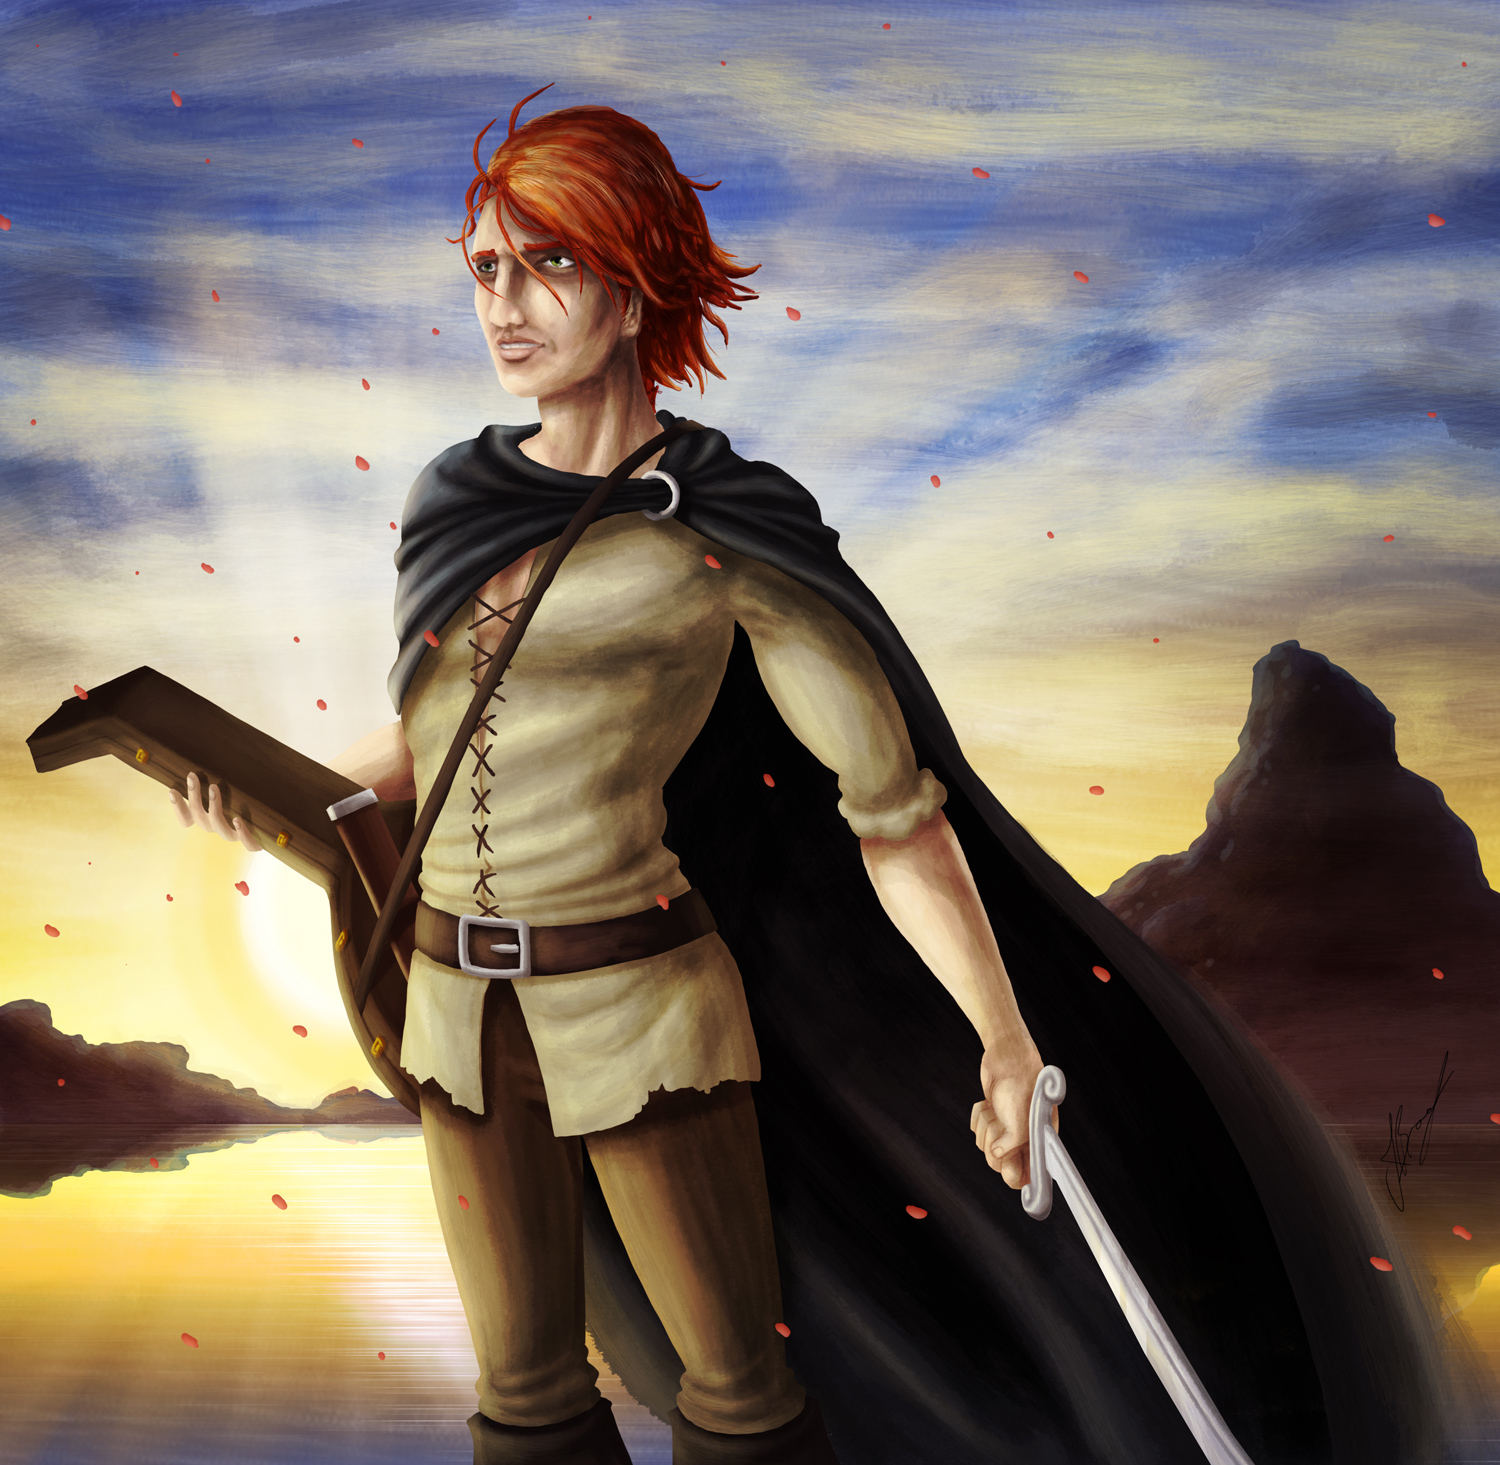 Kvothe, the bloodless